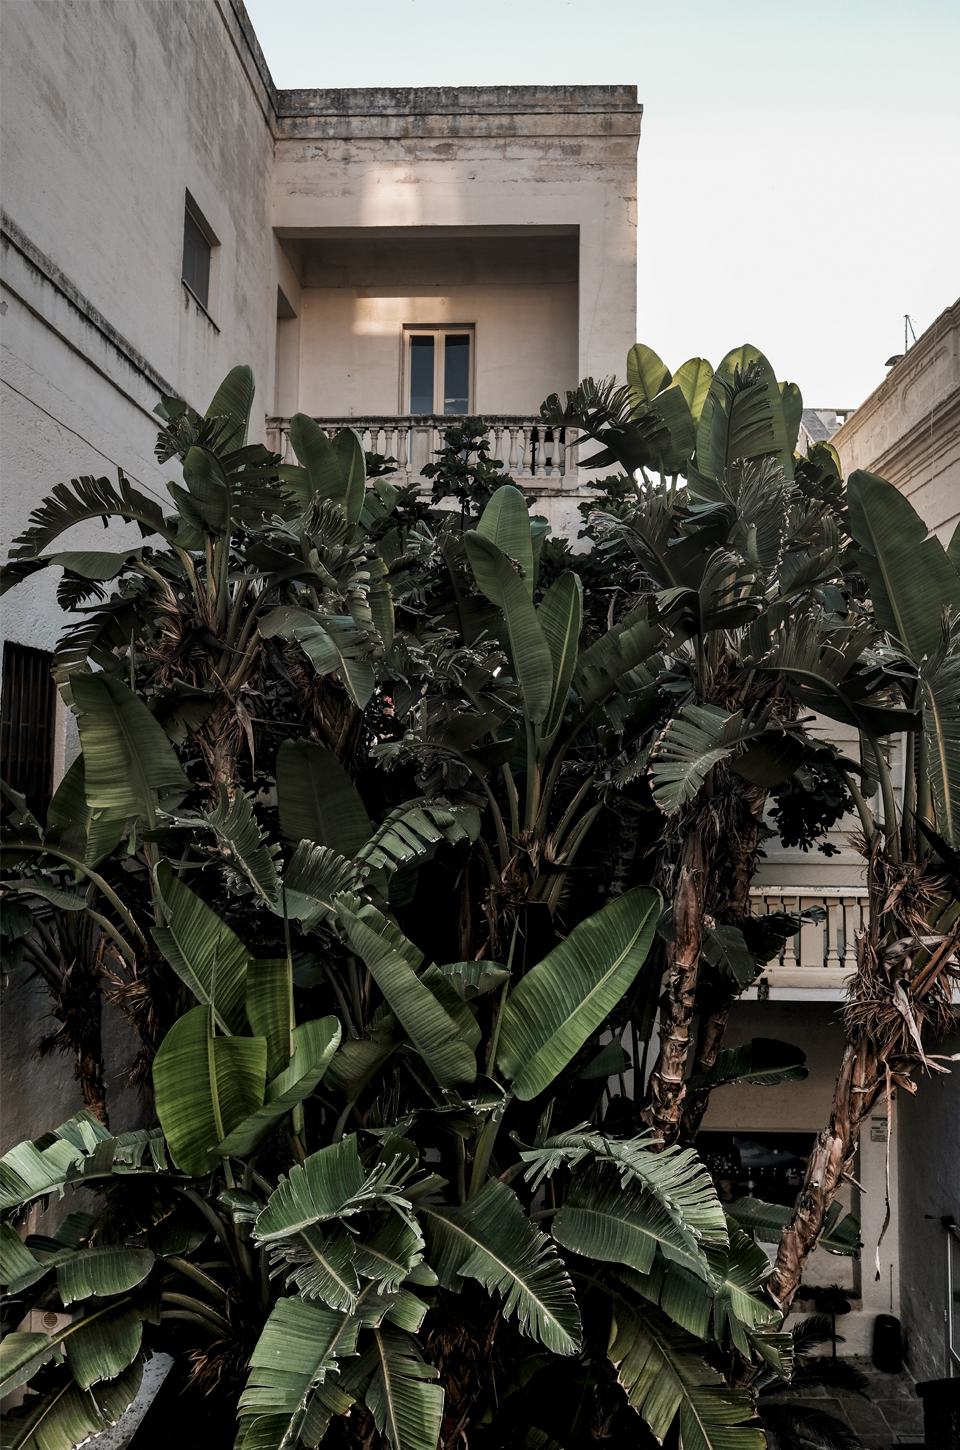 old building behind a banana tree on the streets of Polignano a Mare